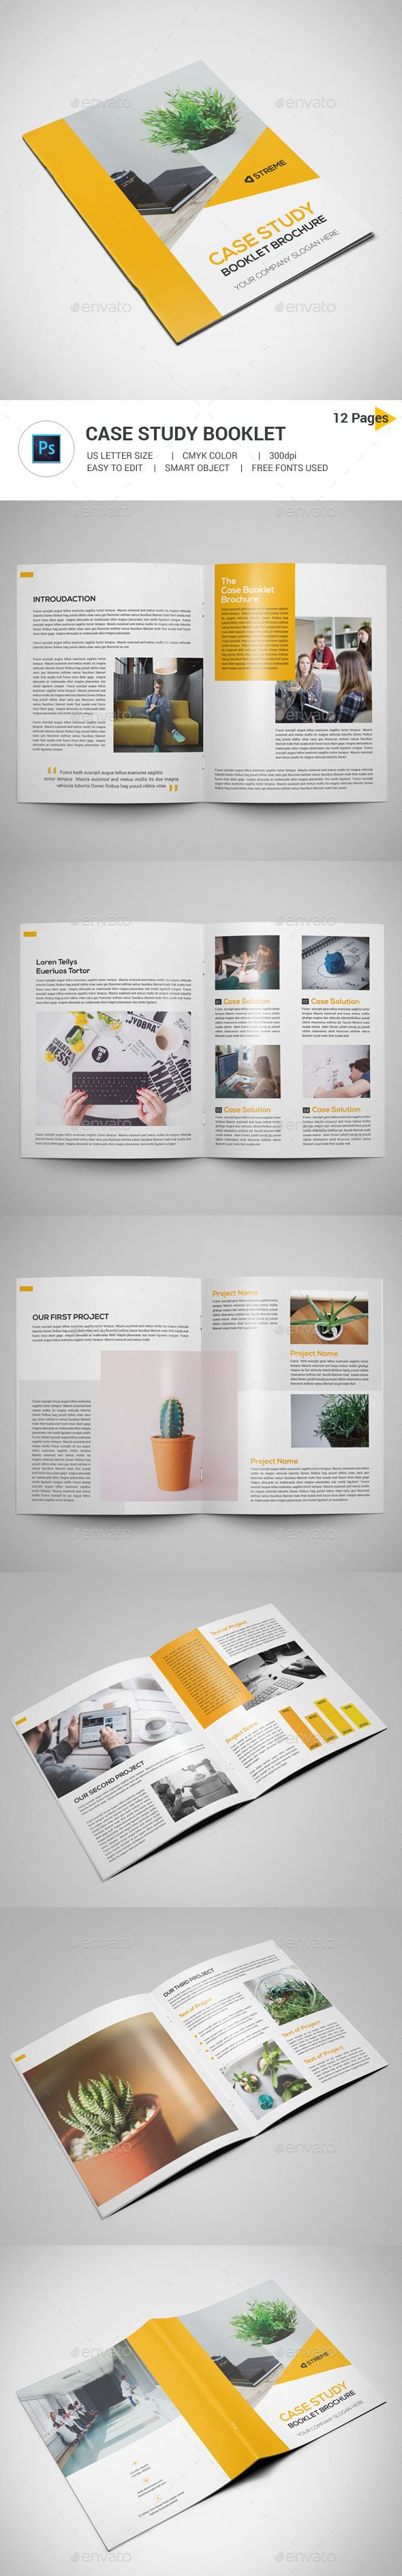 case study booklet graphicriver Case study template flyer by sanlife graphicriver clean case study template design3edge com case study template madinbelgrade how to write a case study bookmarkable.